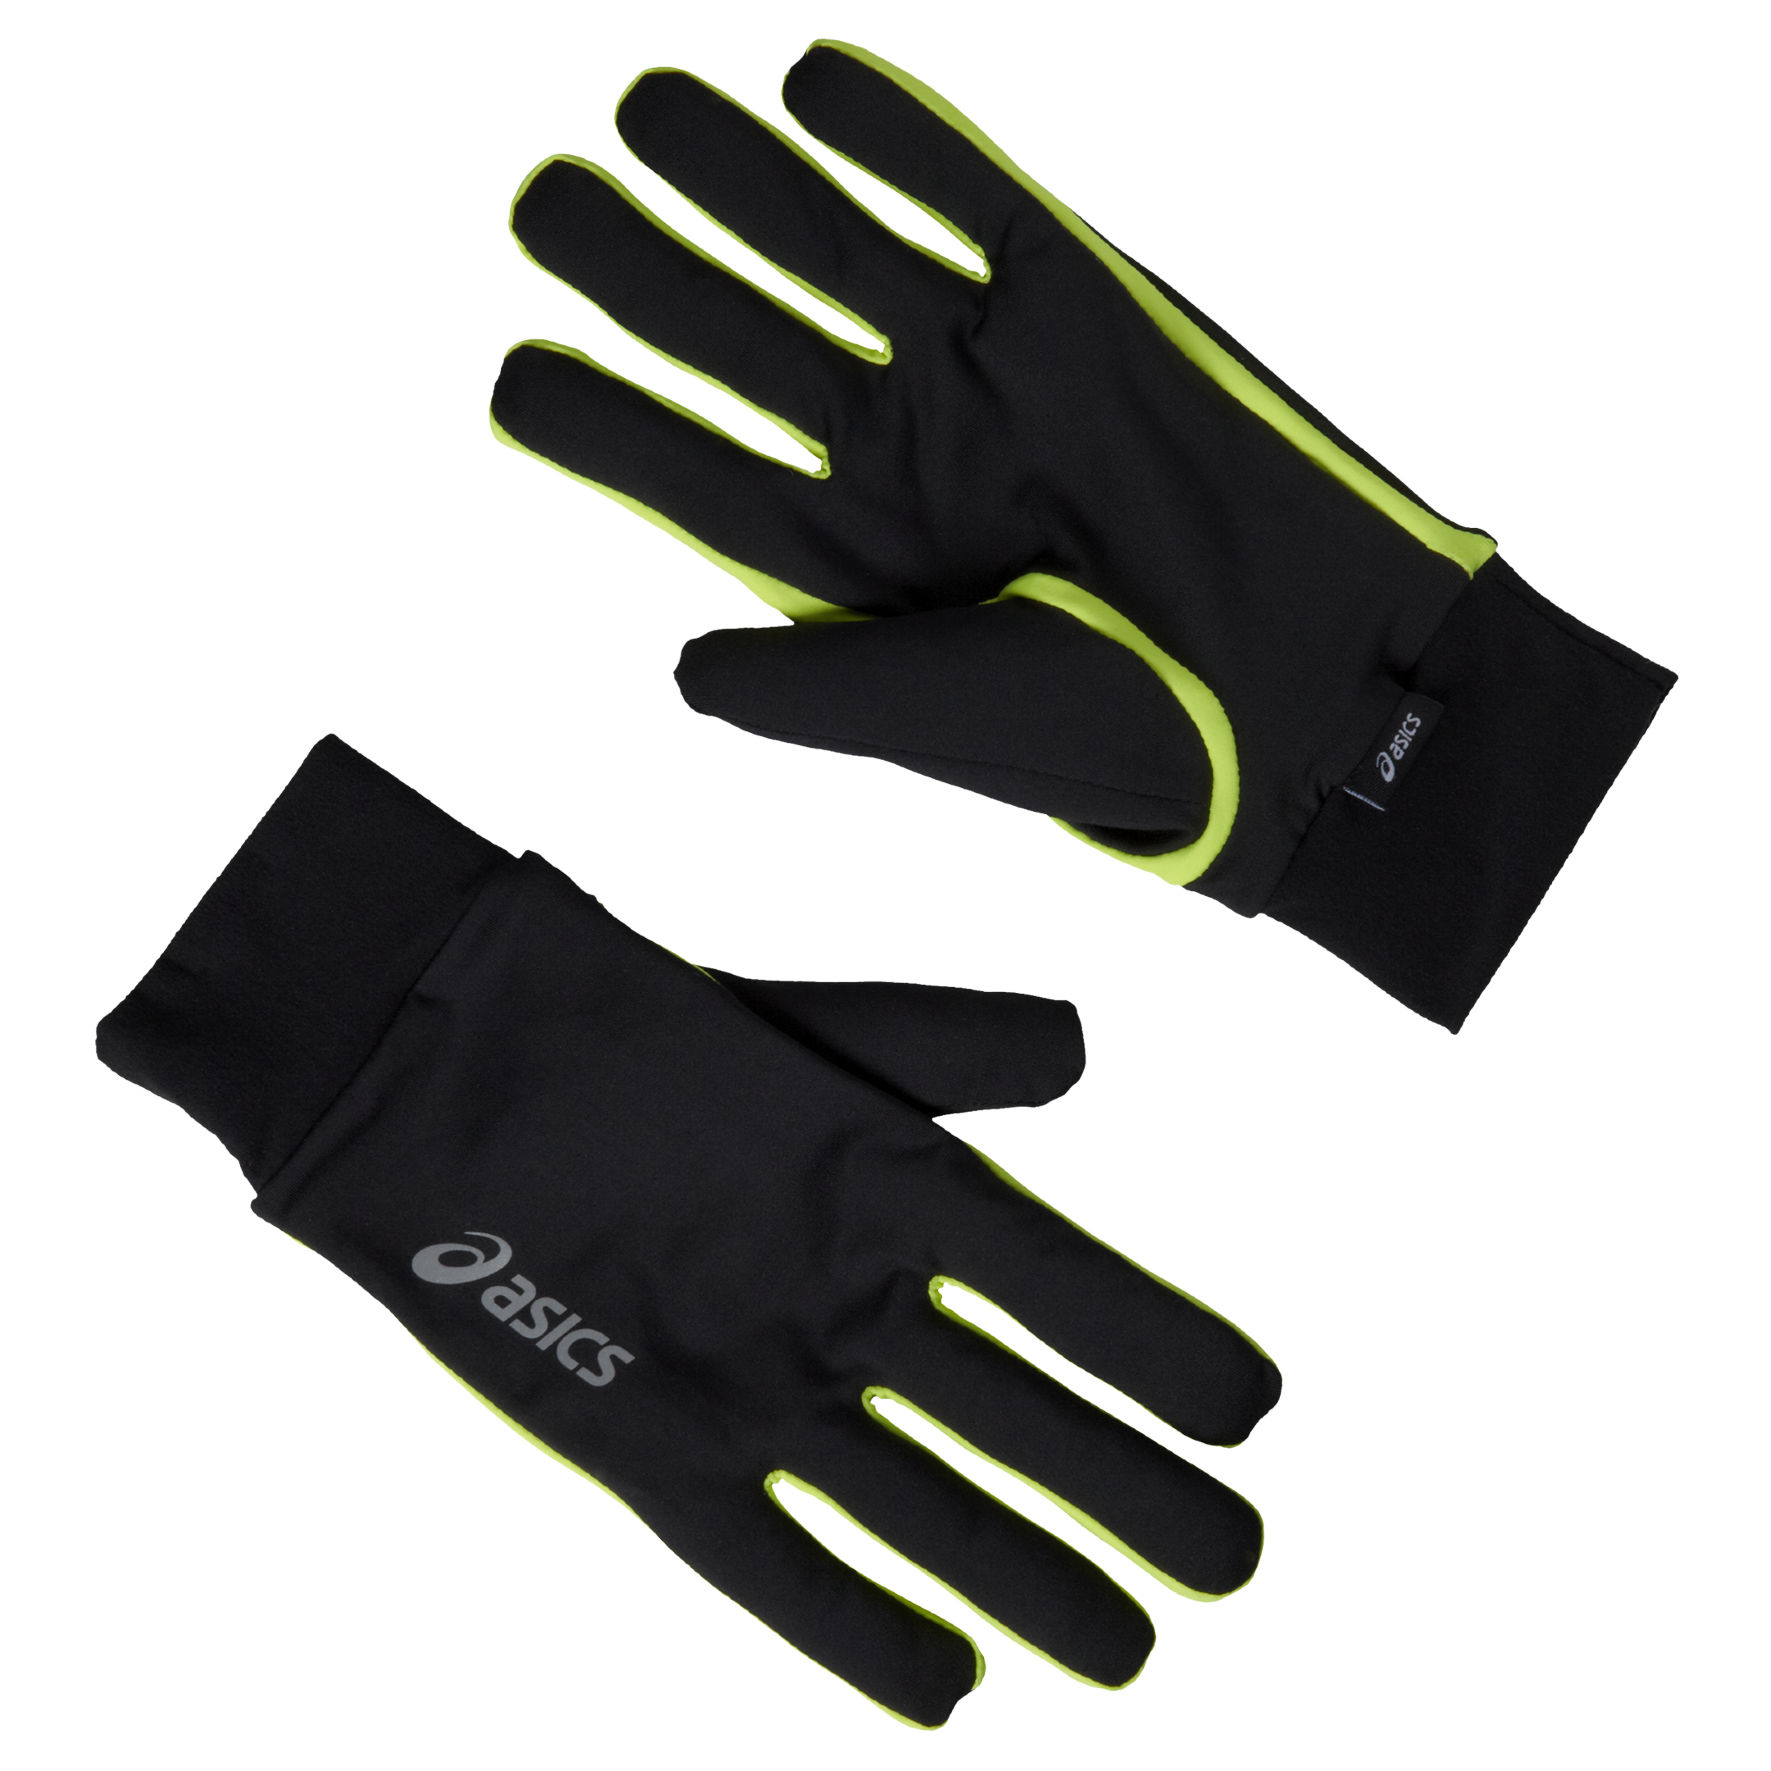 Asics Basic Gloves in Schwarz Neongelb